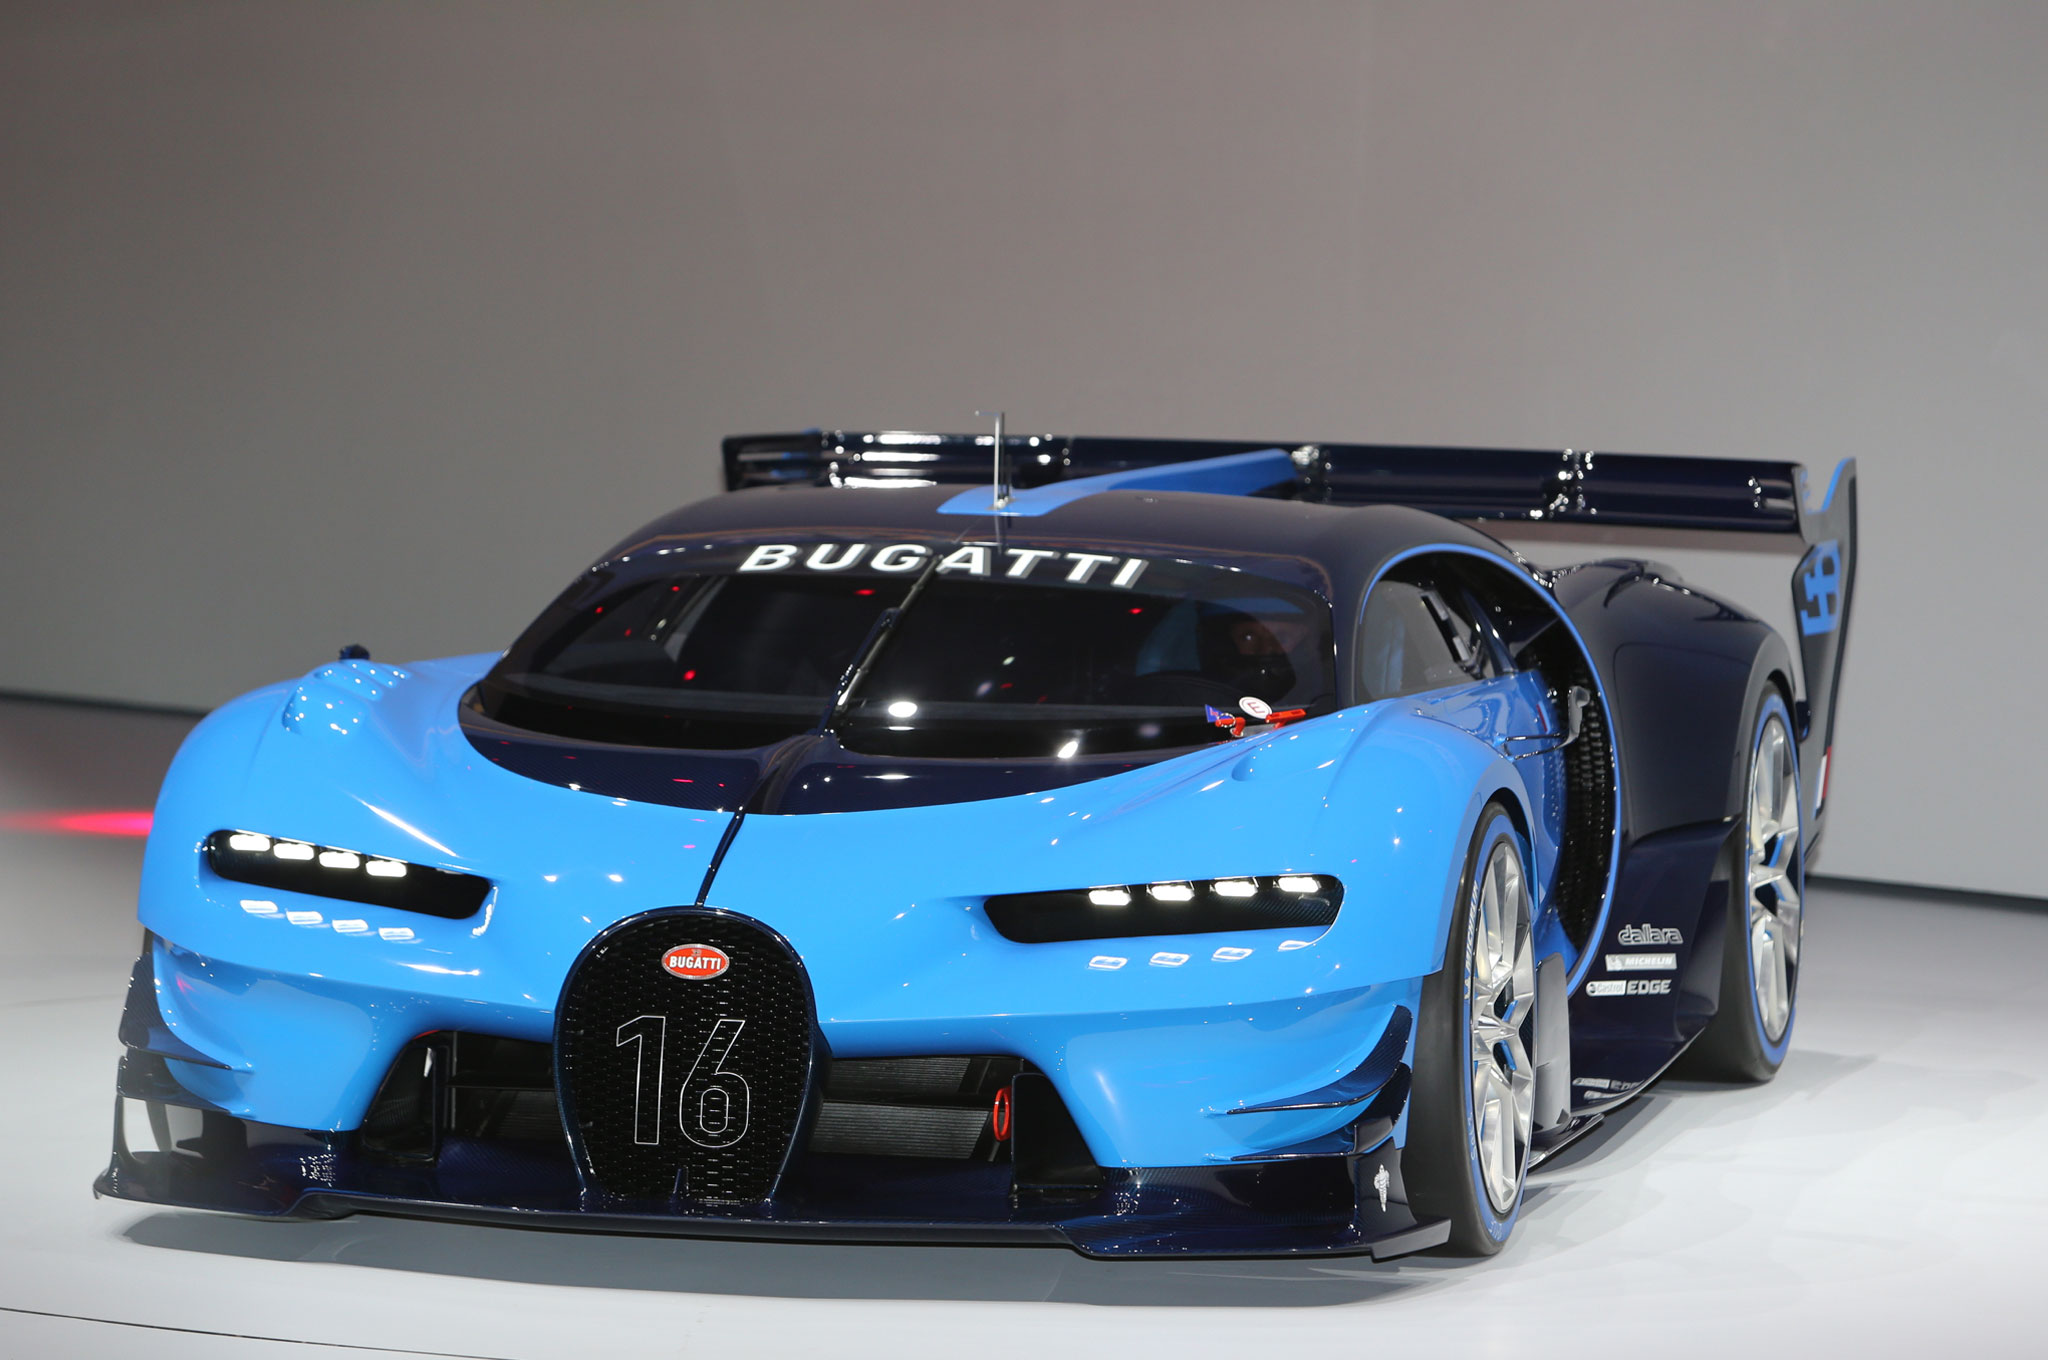 bugatti vision gran turismo concept pays homage to le mans racers. Black Bedroom Furniture Sets. Home Design Ideas